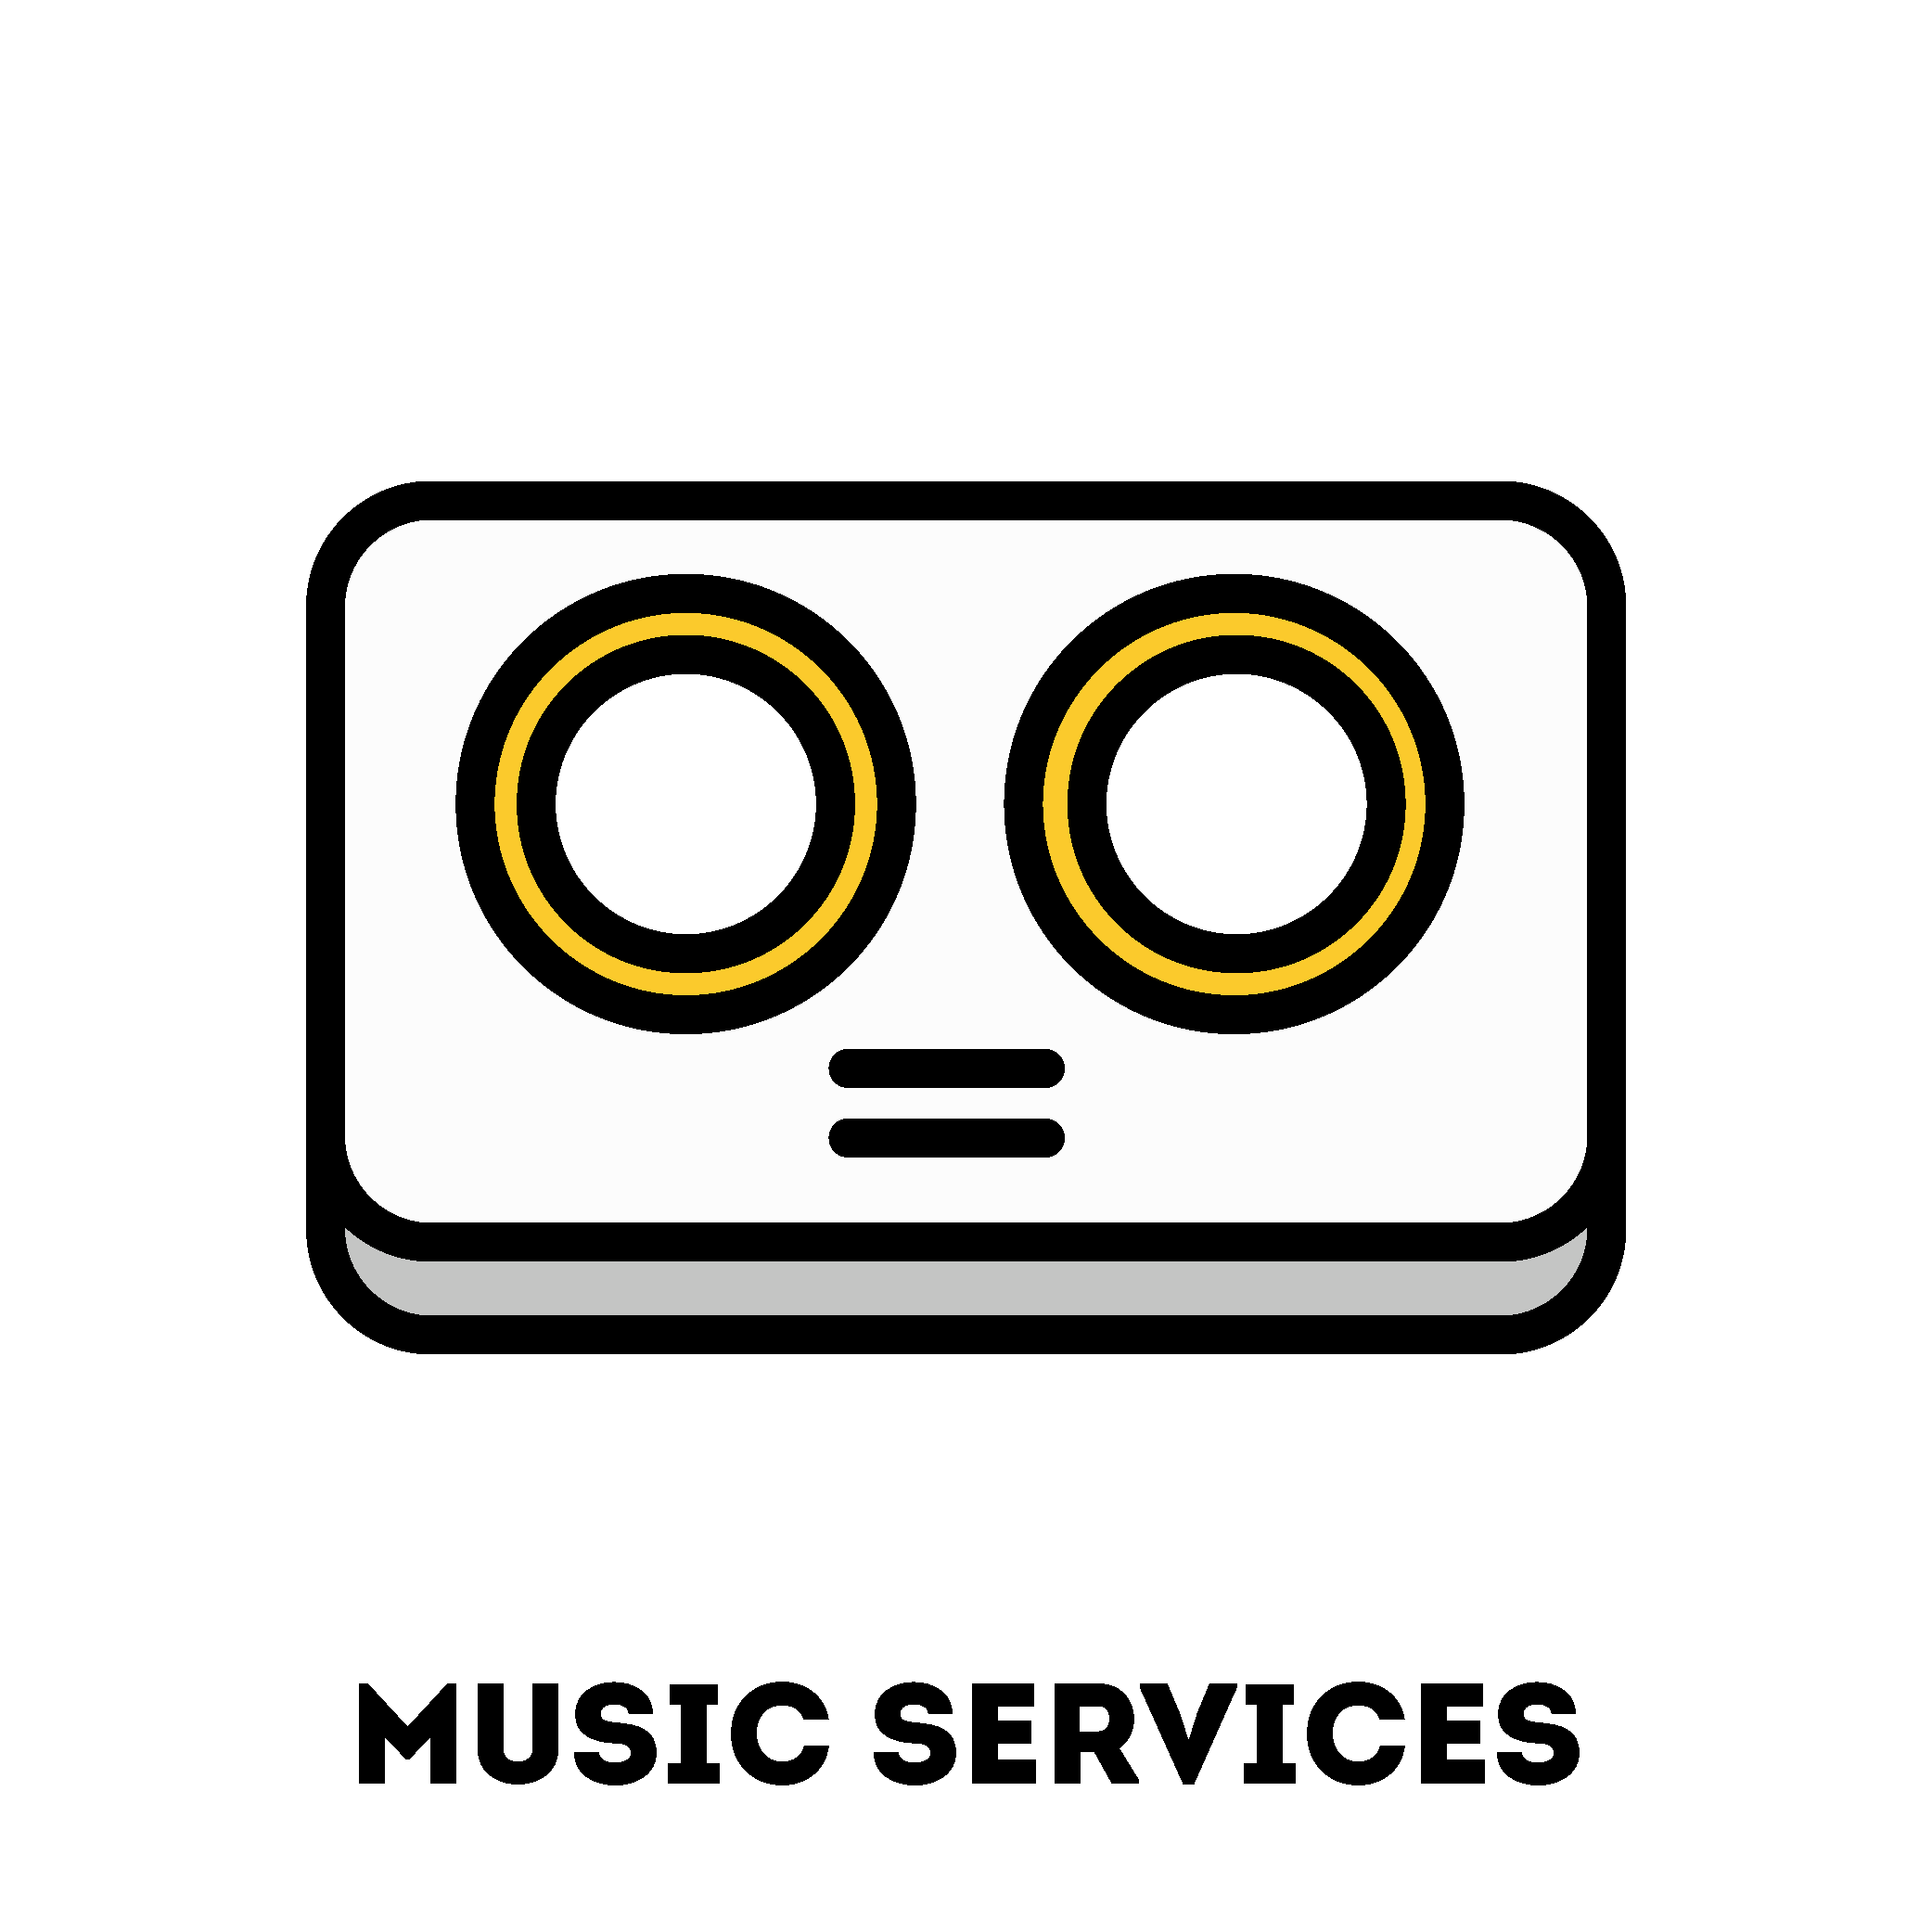 Music_Services.png